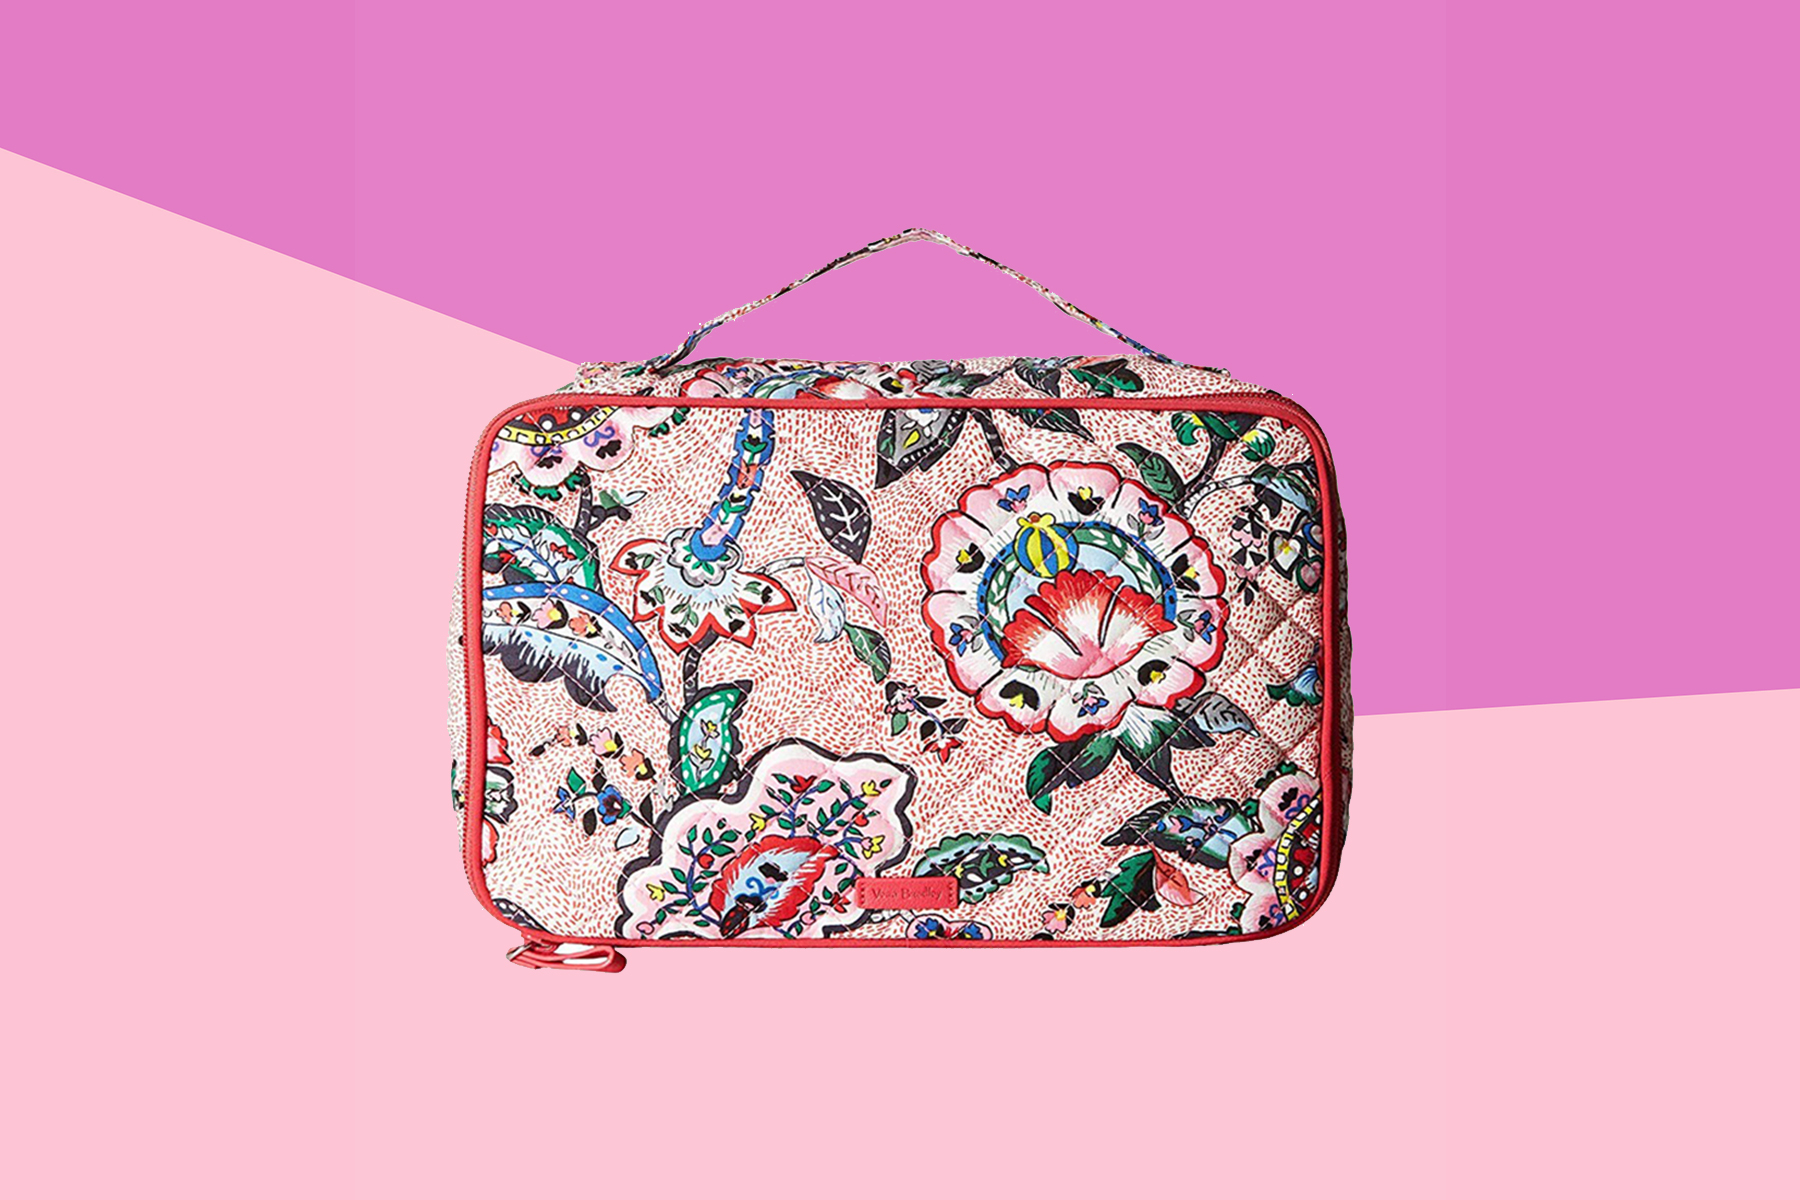 503e48233b01 The 15 Best Makeup Bags for 2019, According to Reviews | Real Simple